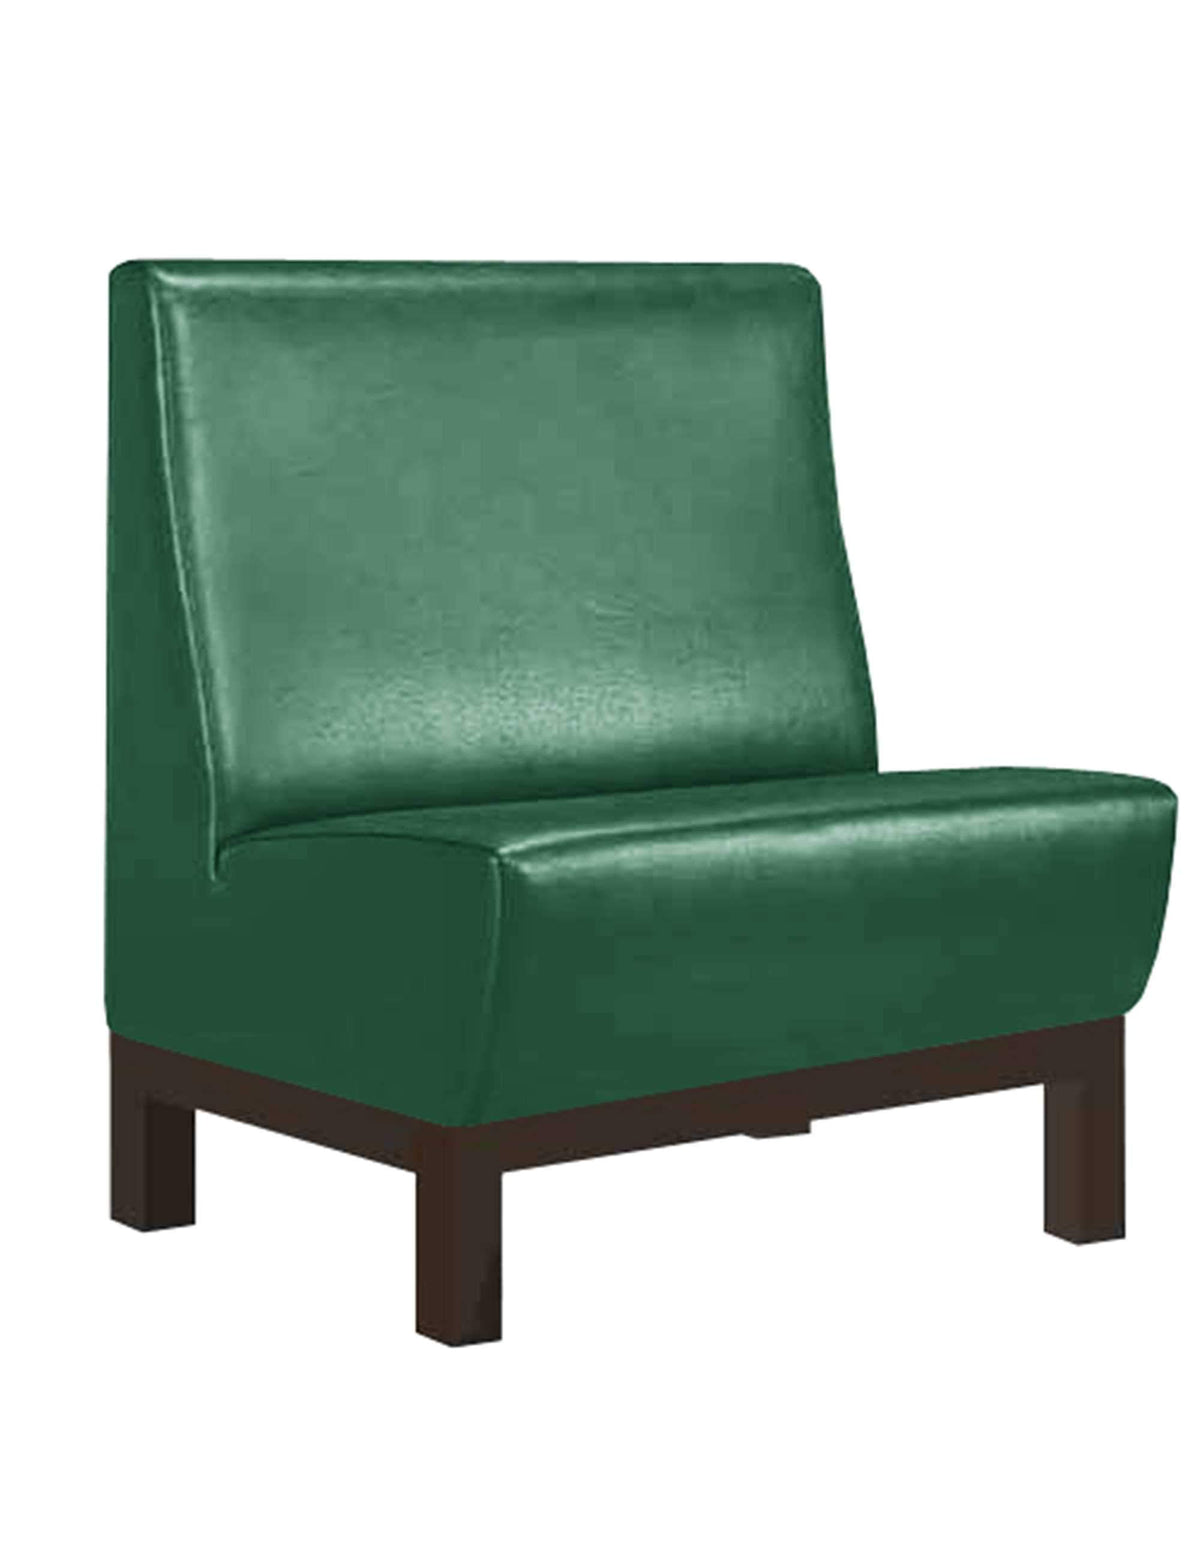 Plain Back Fixed Seating-Furniture People-Contract Furniture Store